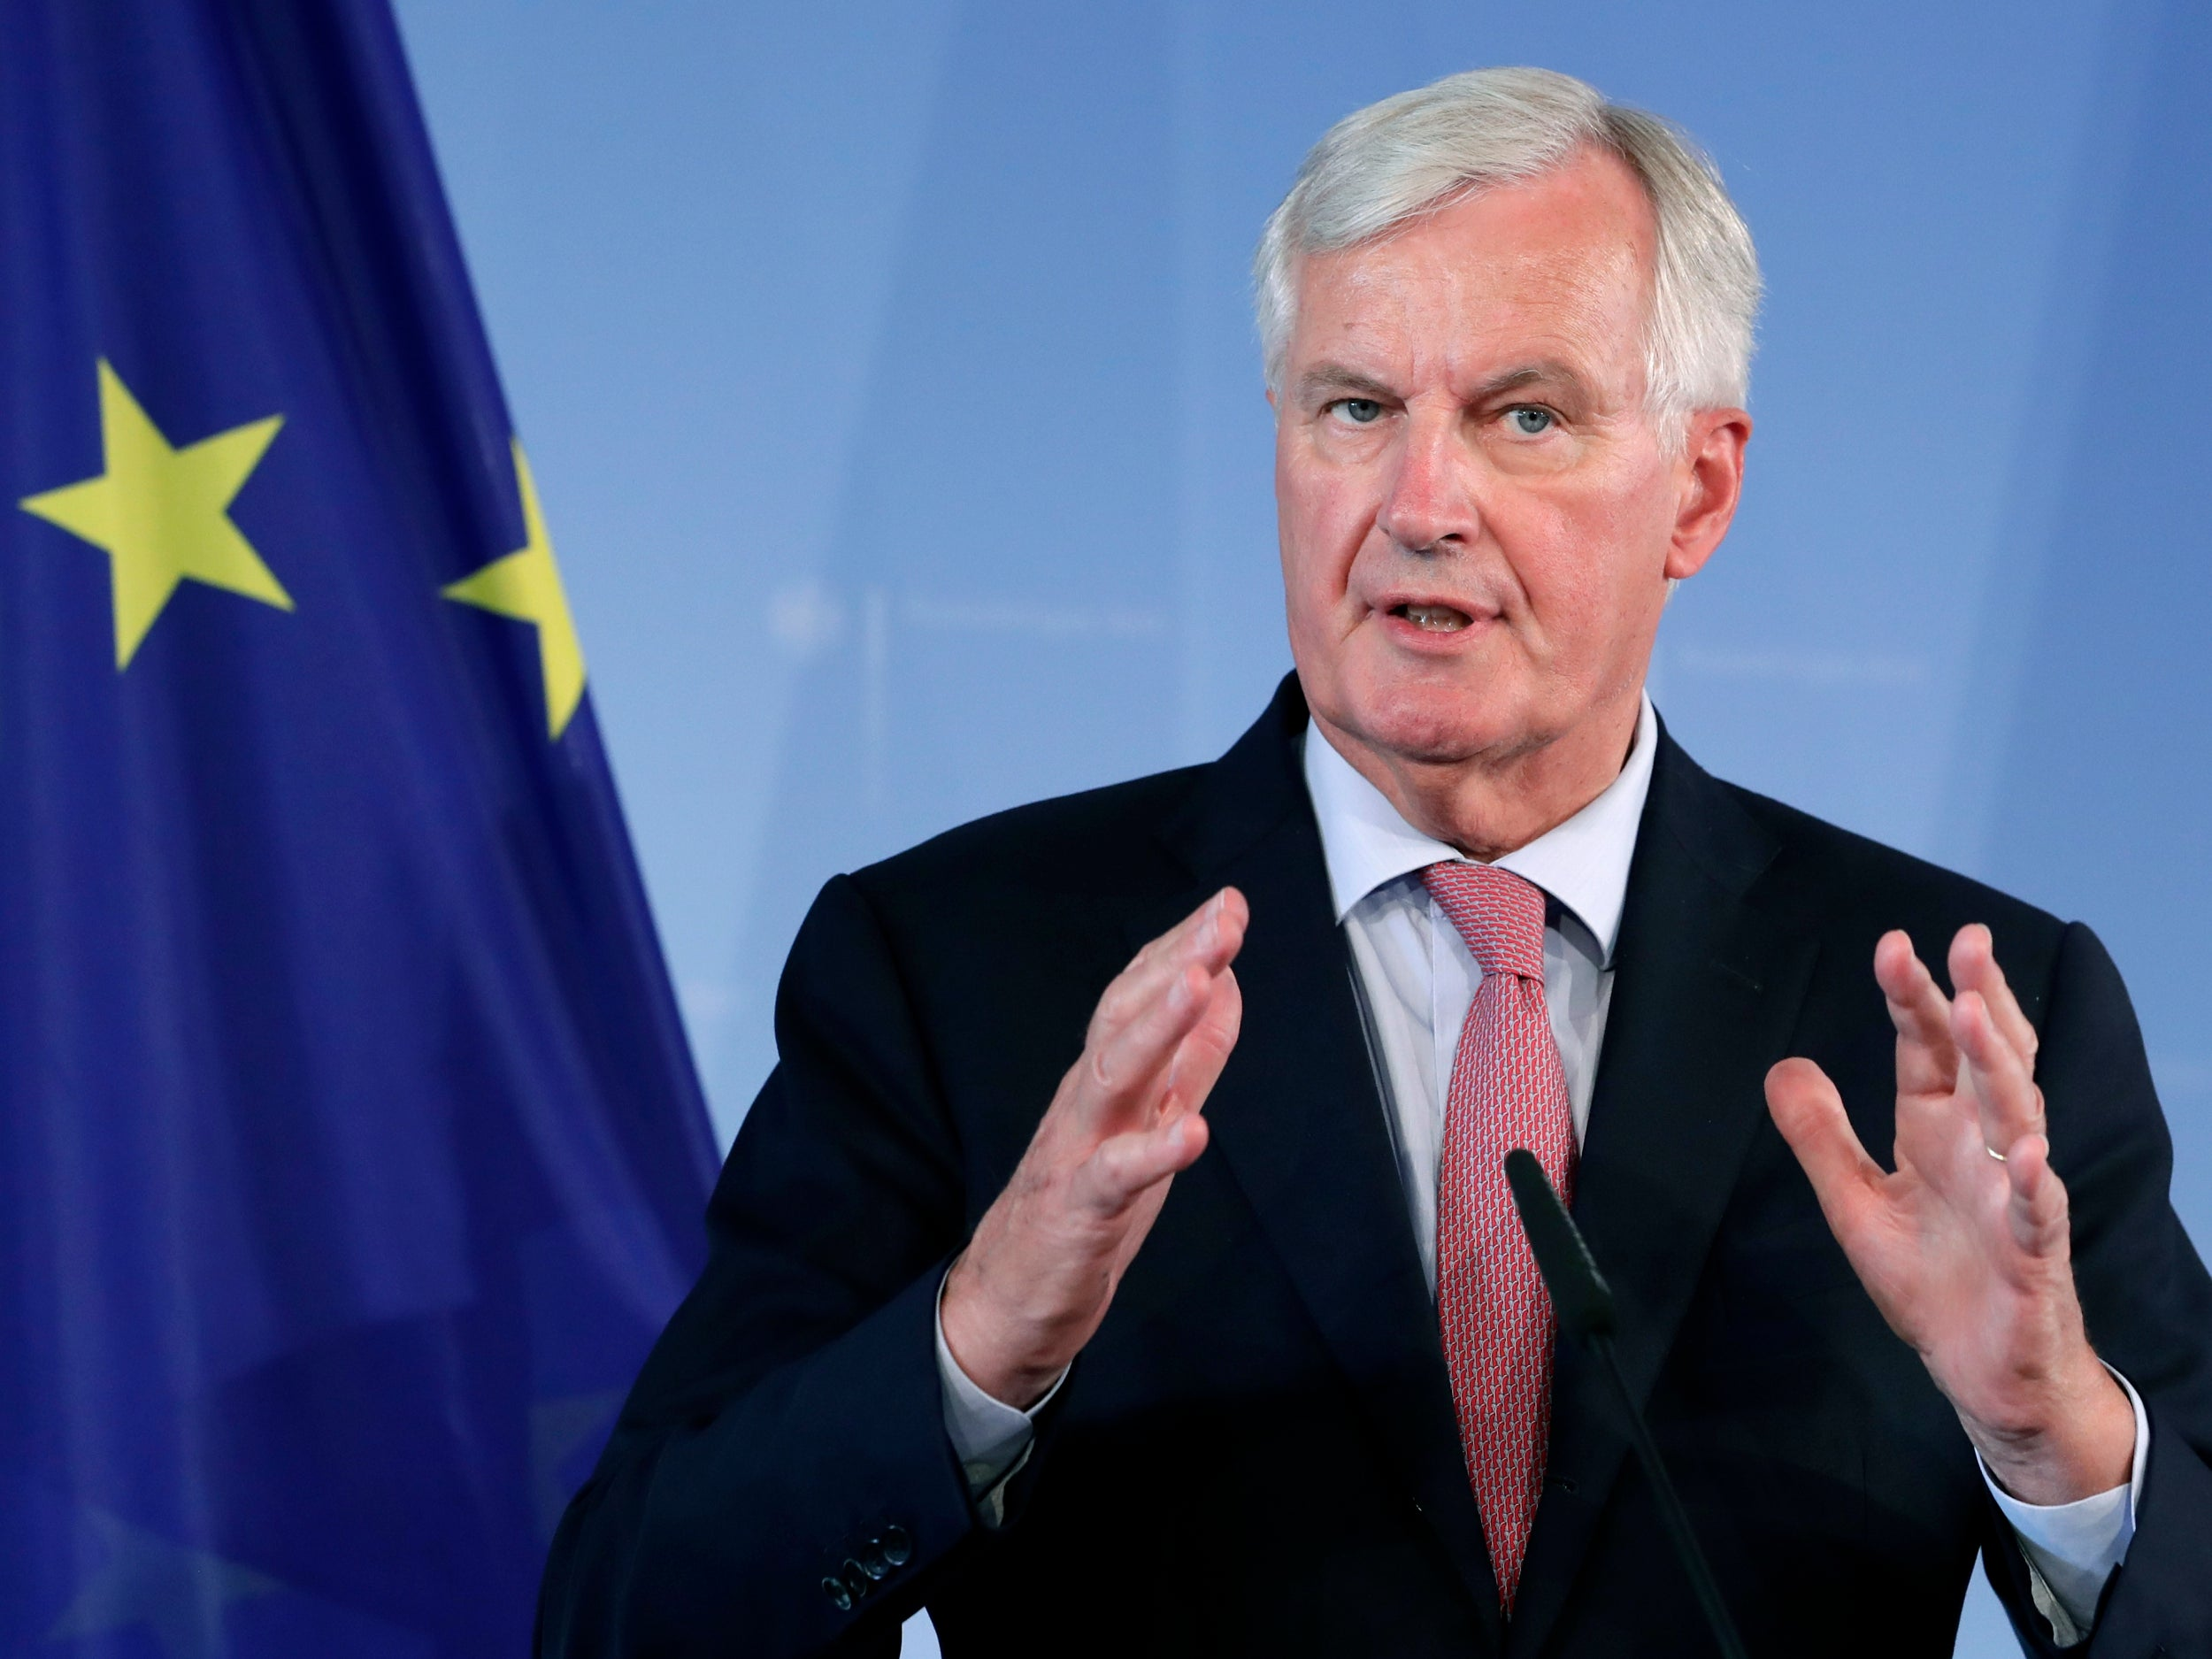 Barnier rules himself out to replace Jean-Claude Juncker as European Commission president